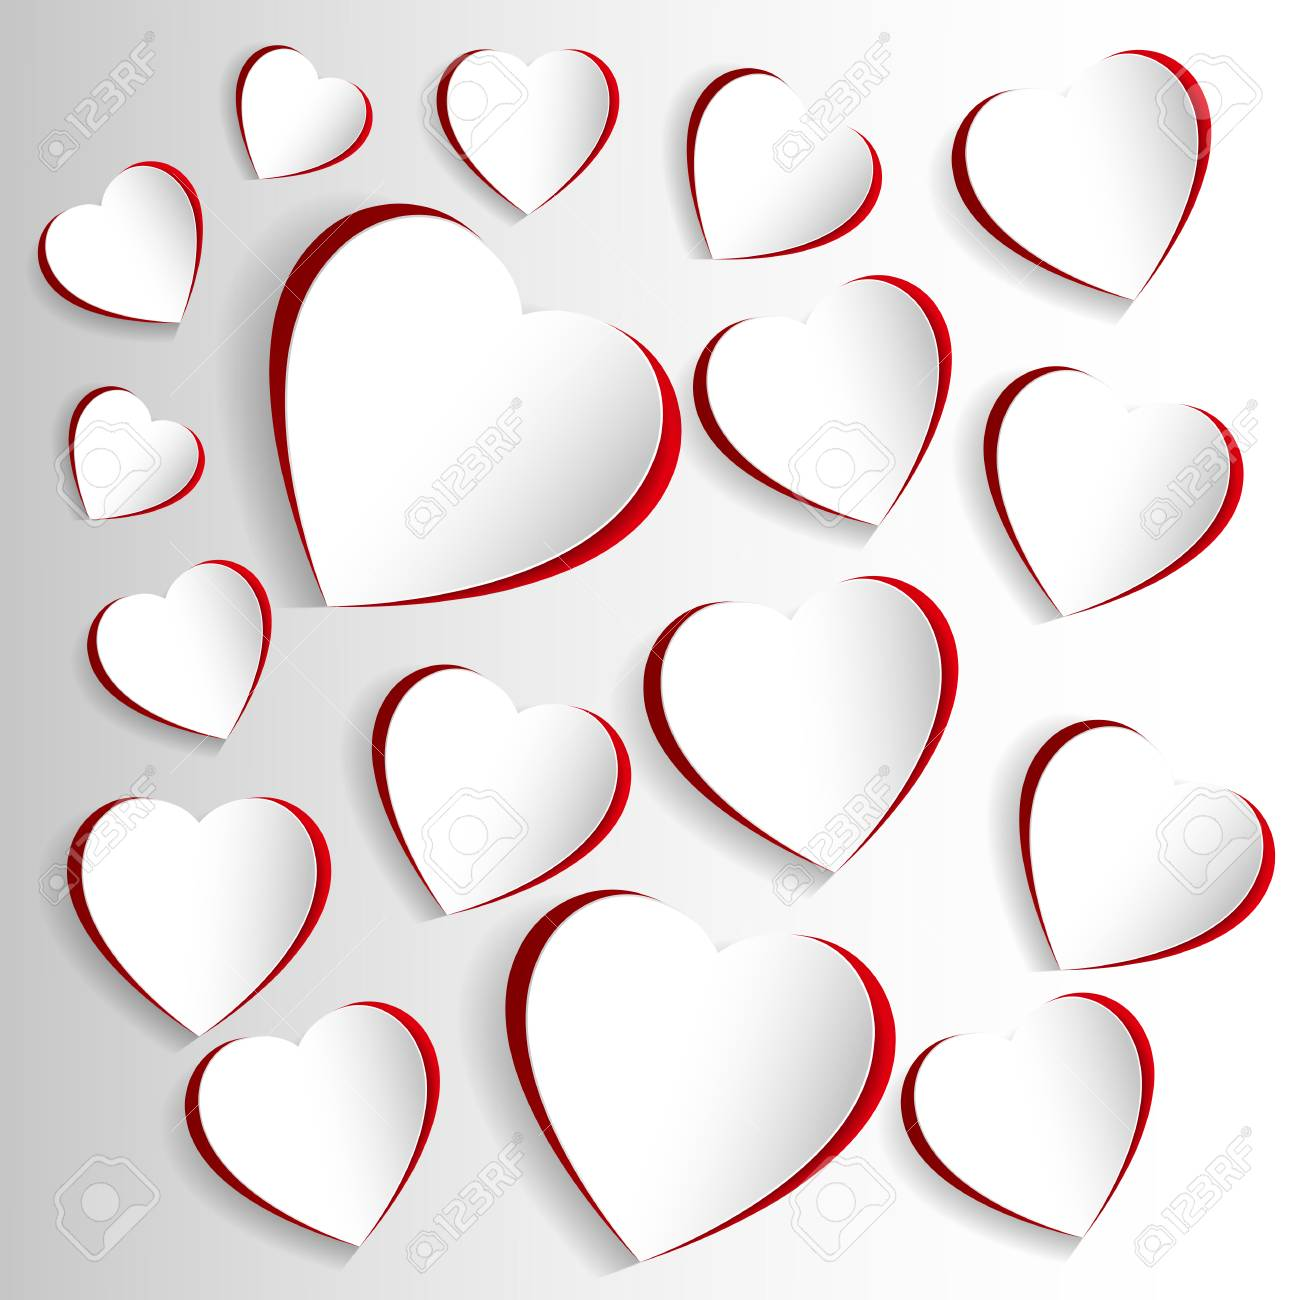 St valentine days greeting card with white and red hearts beautiful st valentine days greeting card with white and red hearts beautiful graphics for banners m4hsunfo